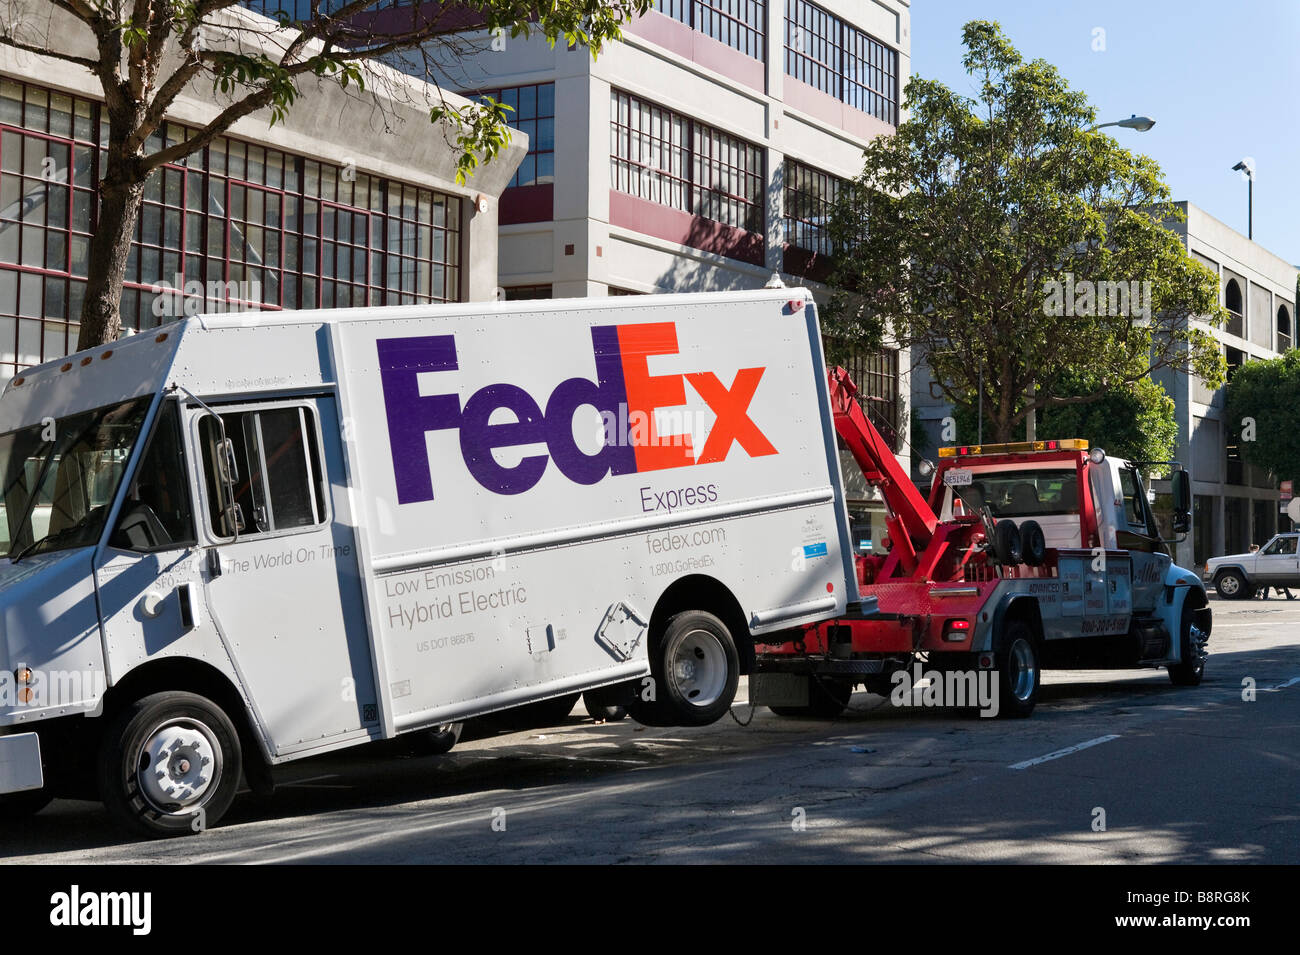 A fedex express hybrid electric delivery van being towed by a tow truck downtown san